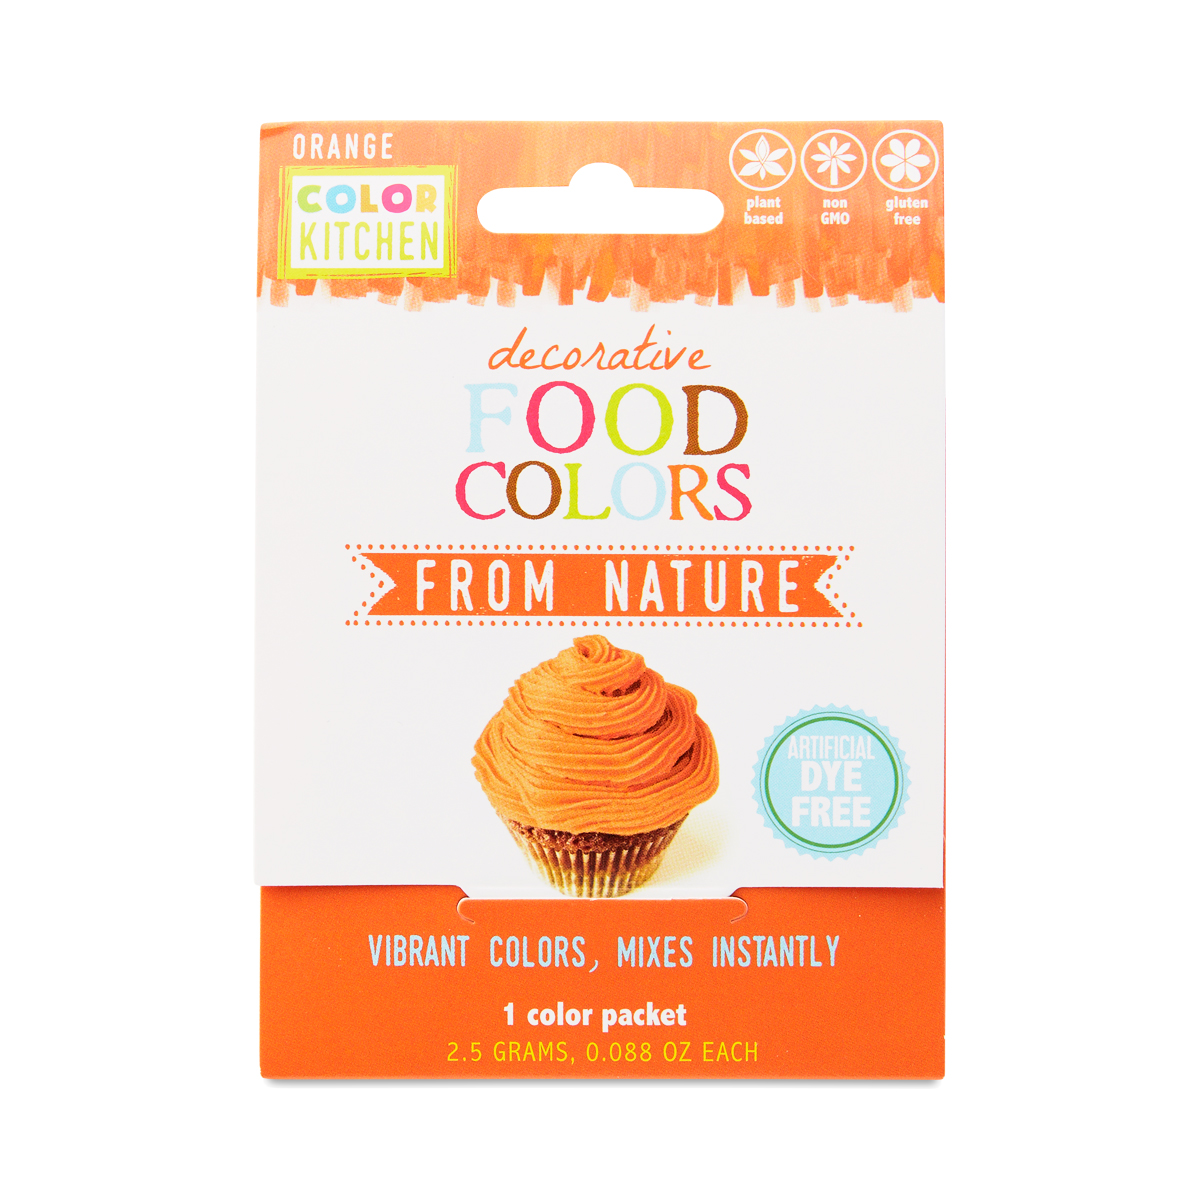 Orange Food Coloring by ColorKitchen - Thrive Market